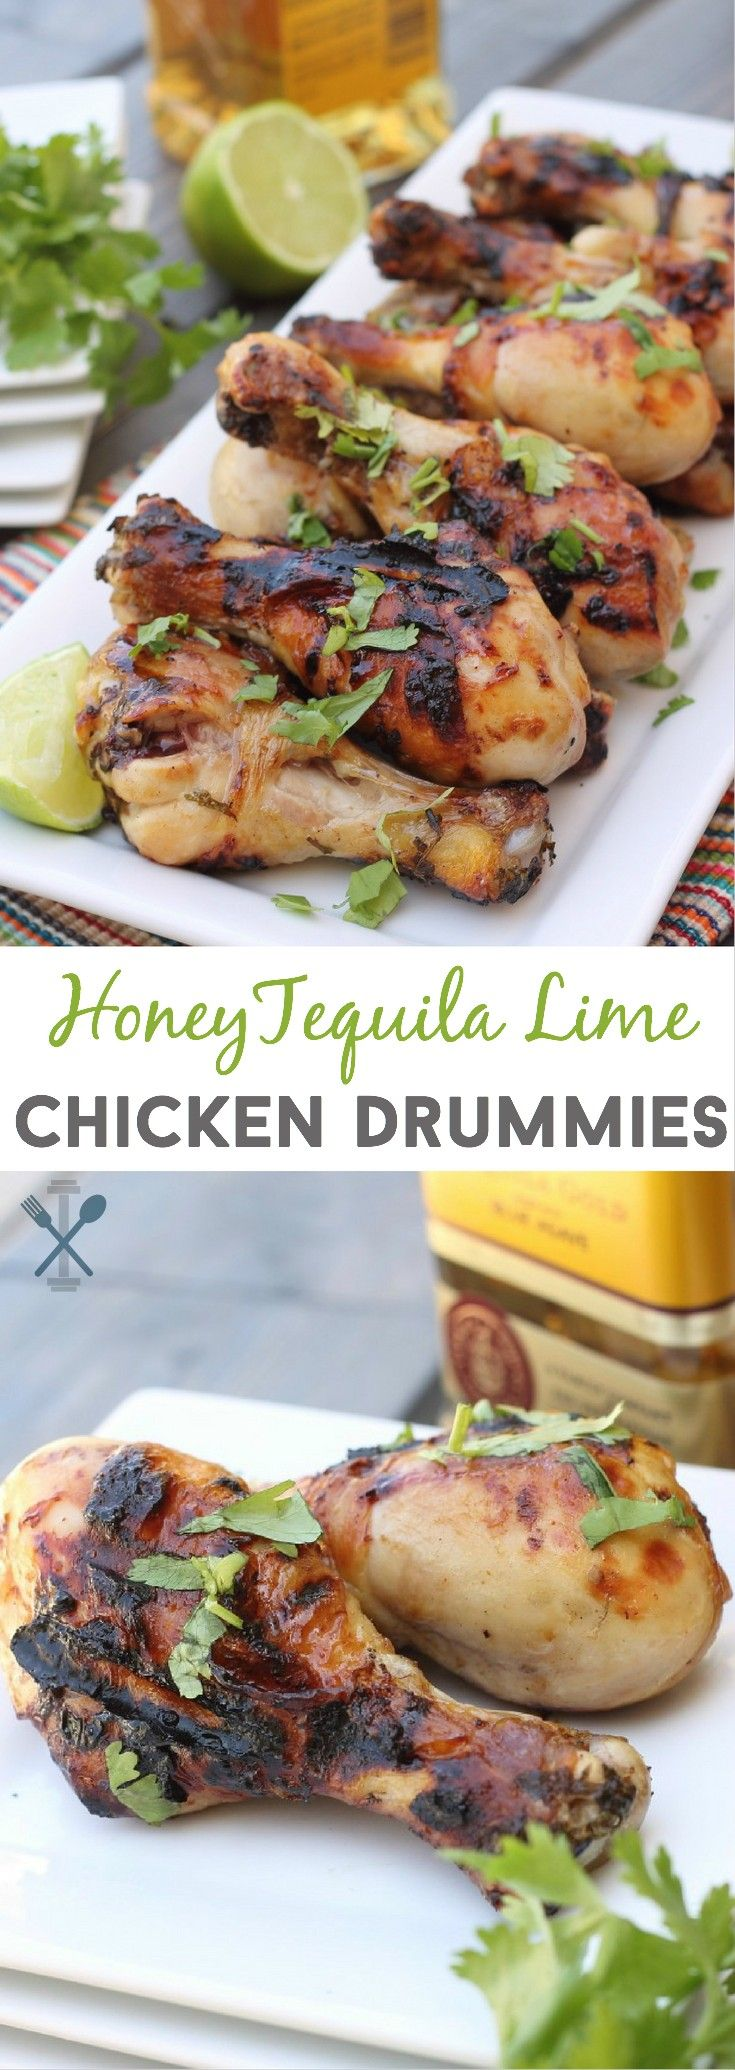 The ultimate football party snack. These honey tequila lime chicken drummies…